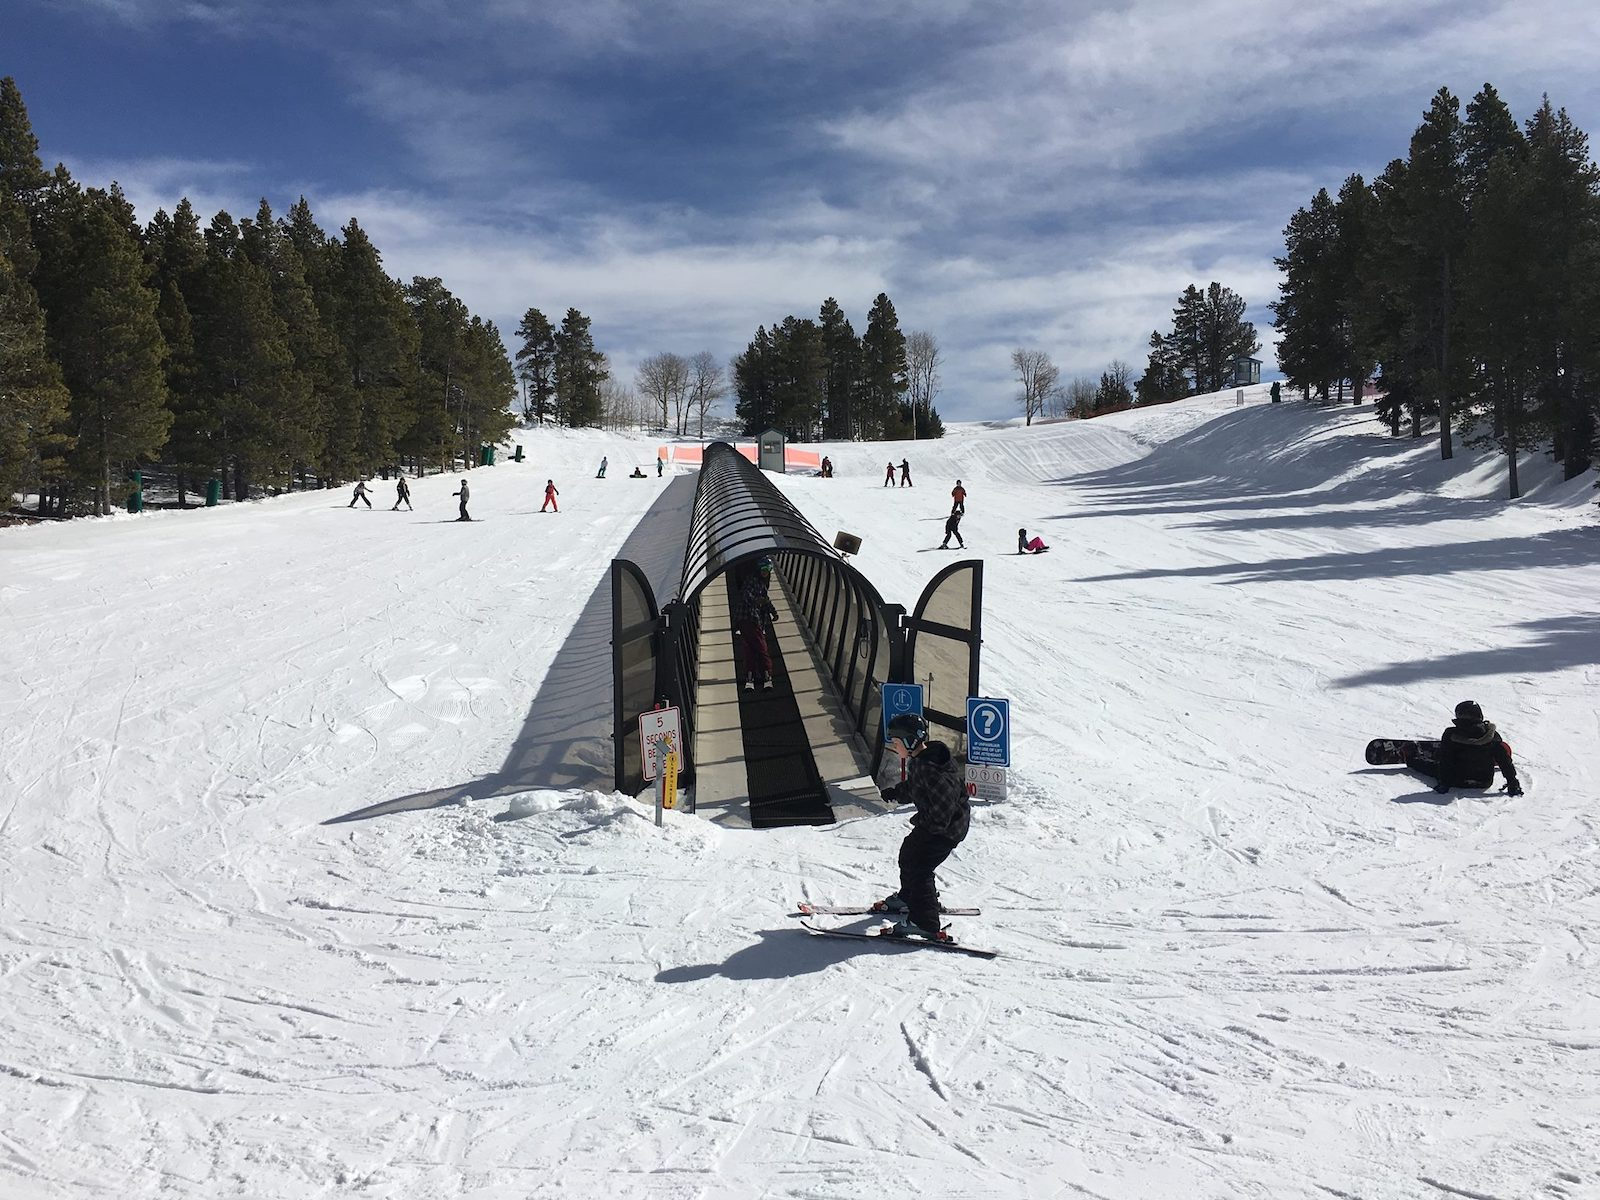 Image of skiers and snowboarders using the magic carpet on the beginner slope at Hogadon Basin Ski Area in Casper, Wyoming